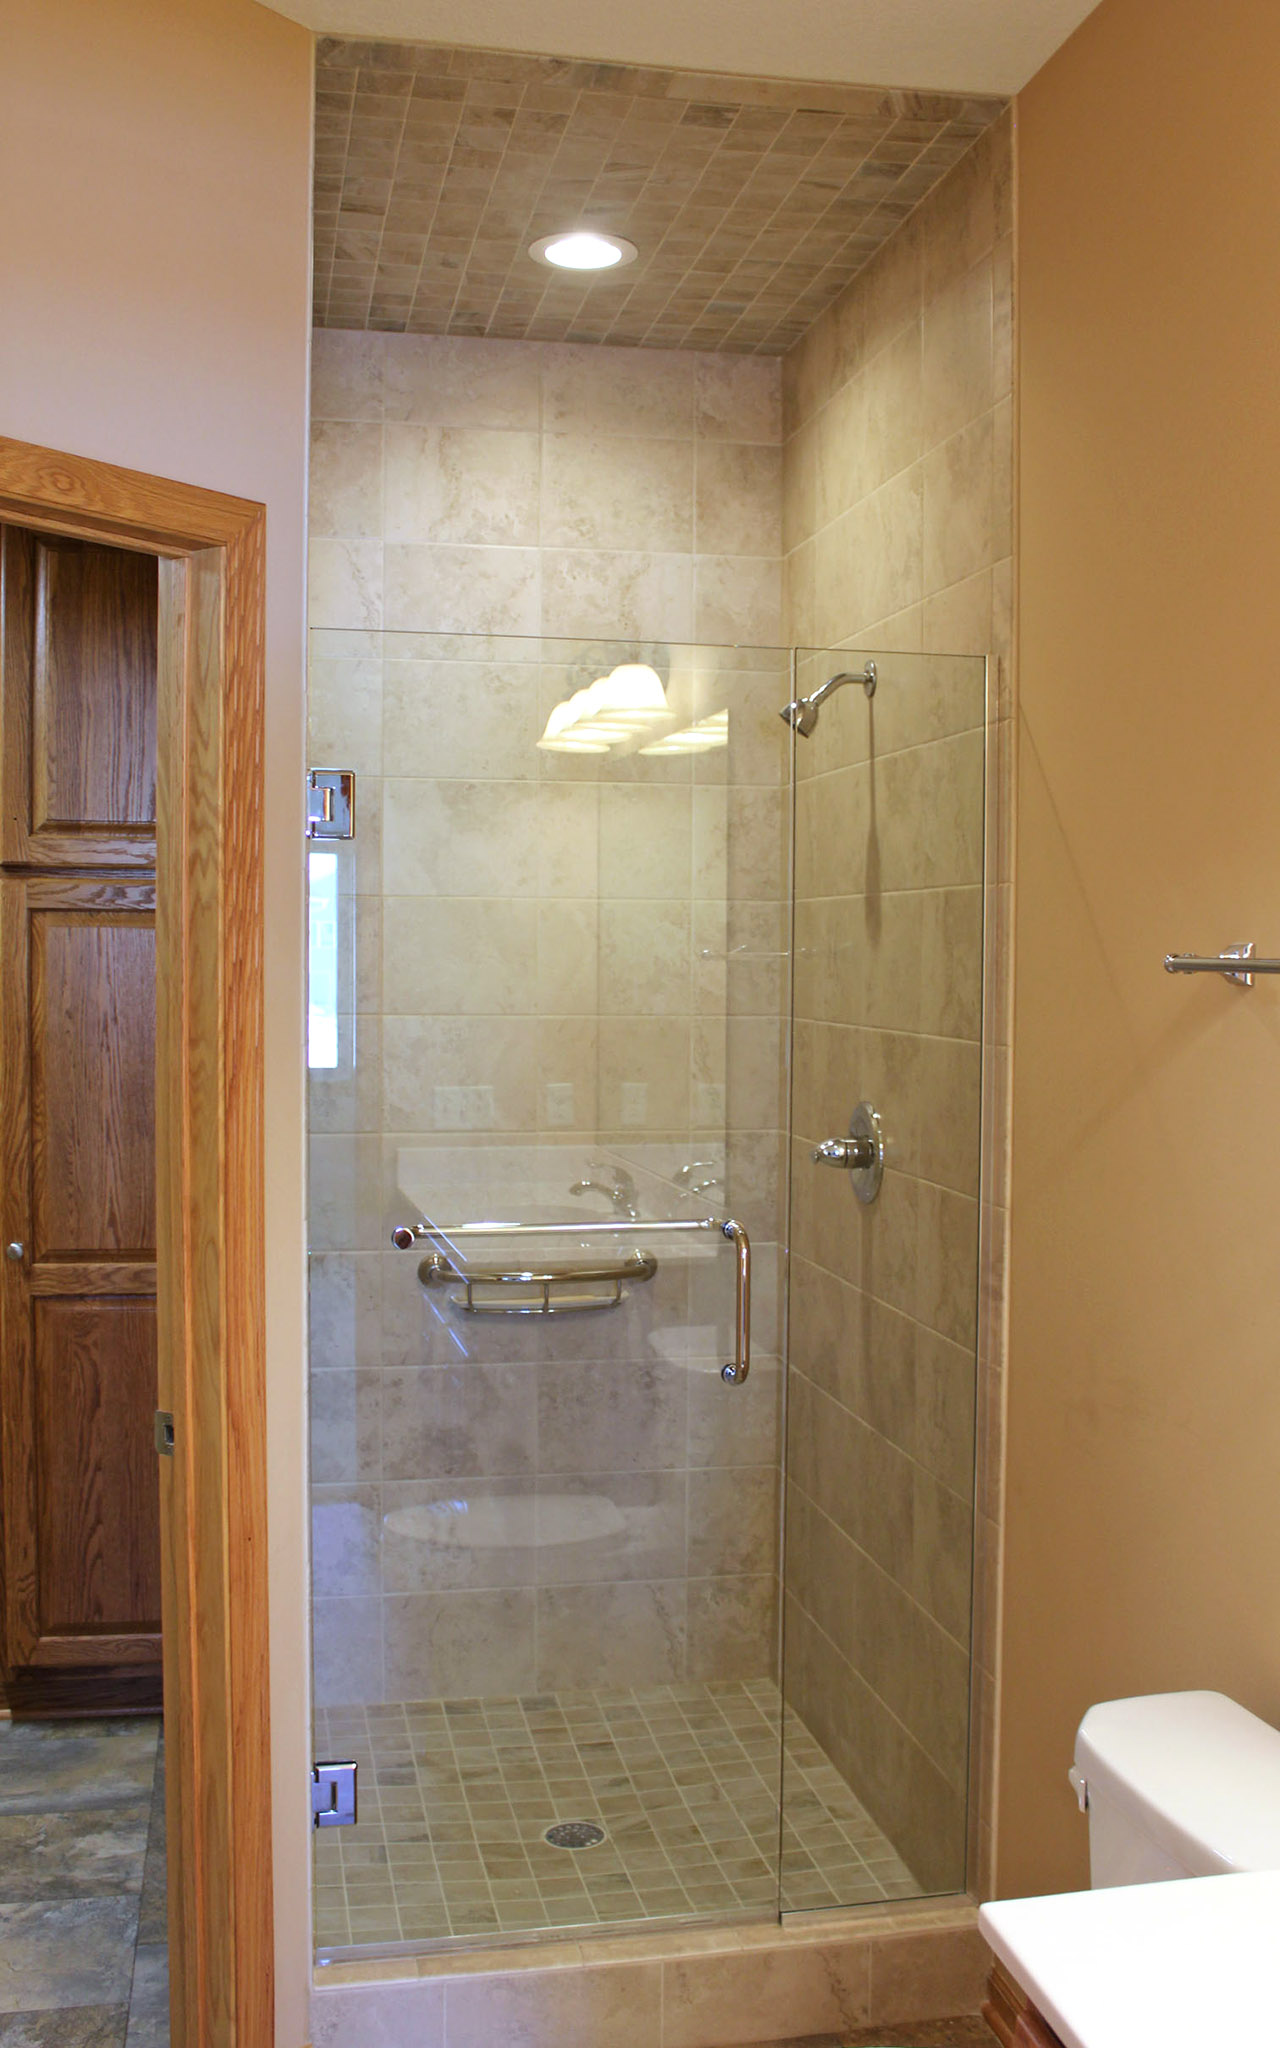 Tall shower with glass door